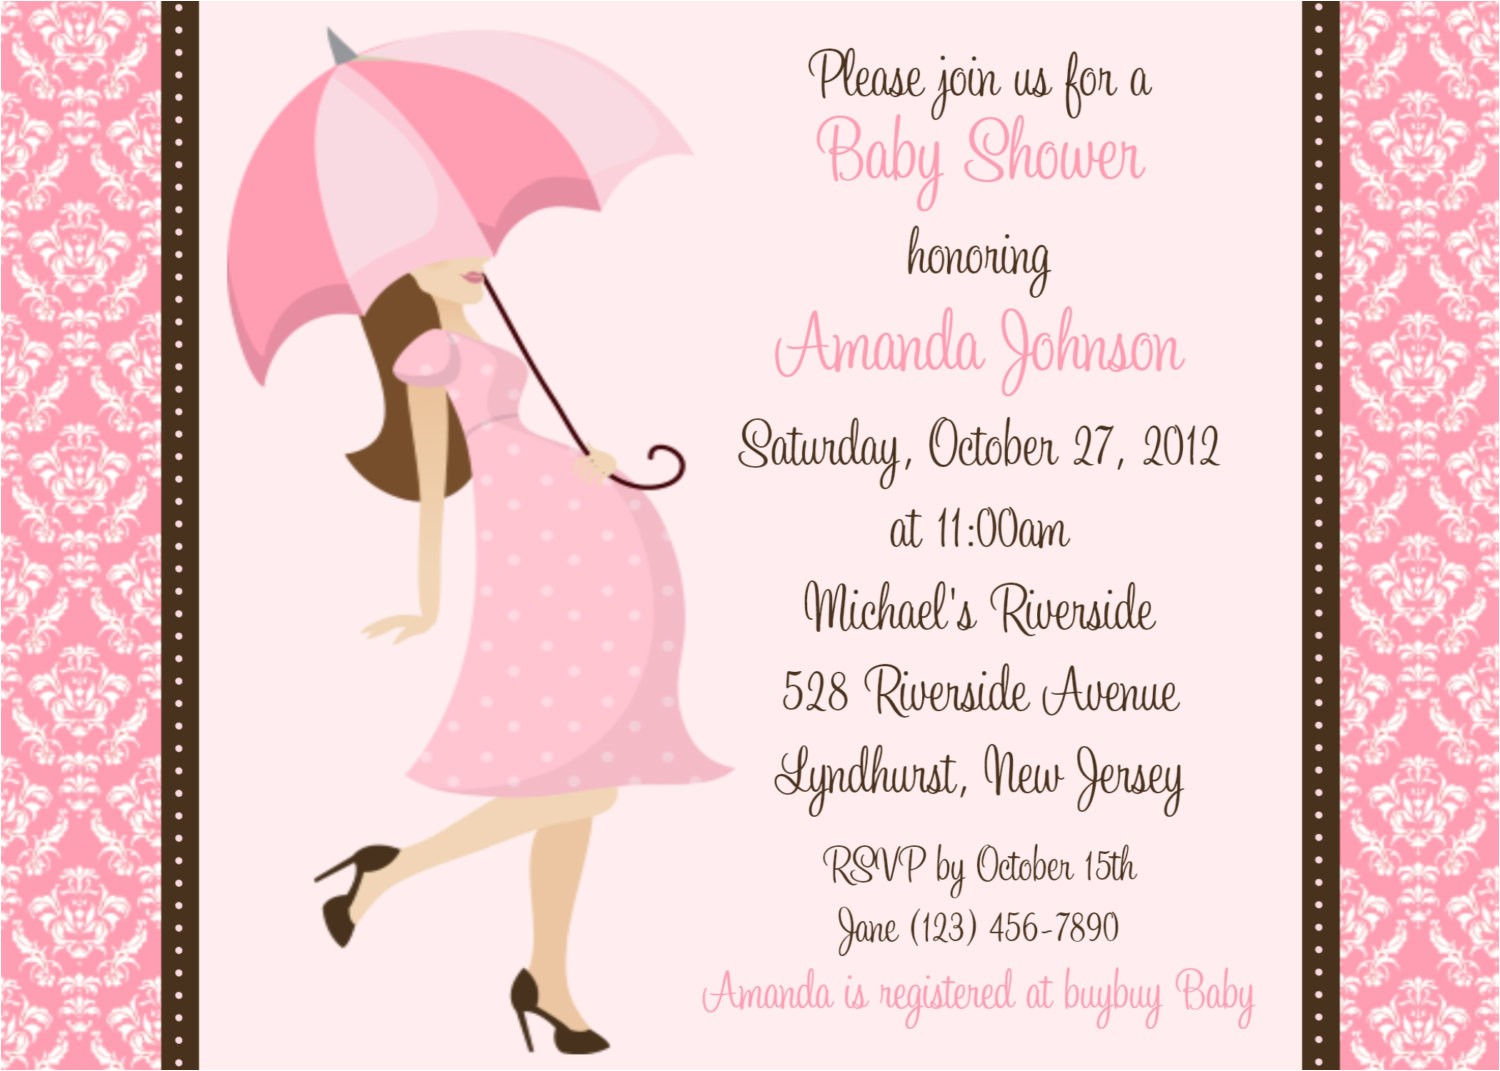 Baby Shower Invites Girl Baby Shower Invitation Wording Fashion & Lifestyle